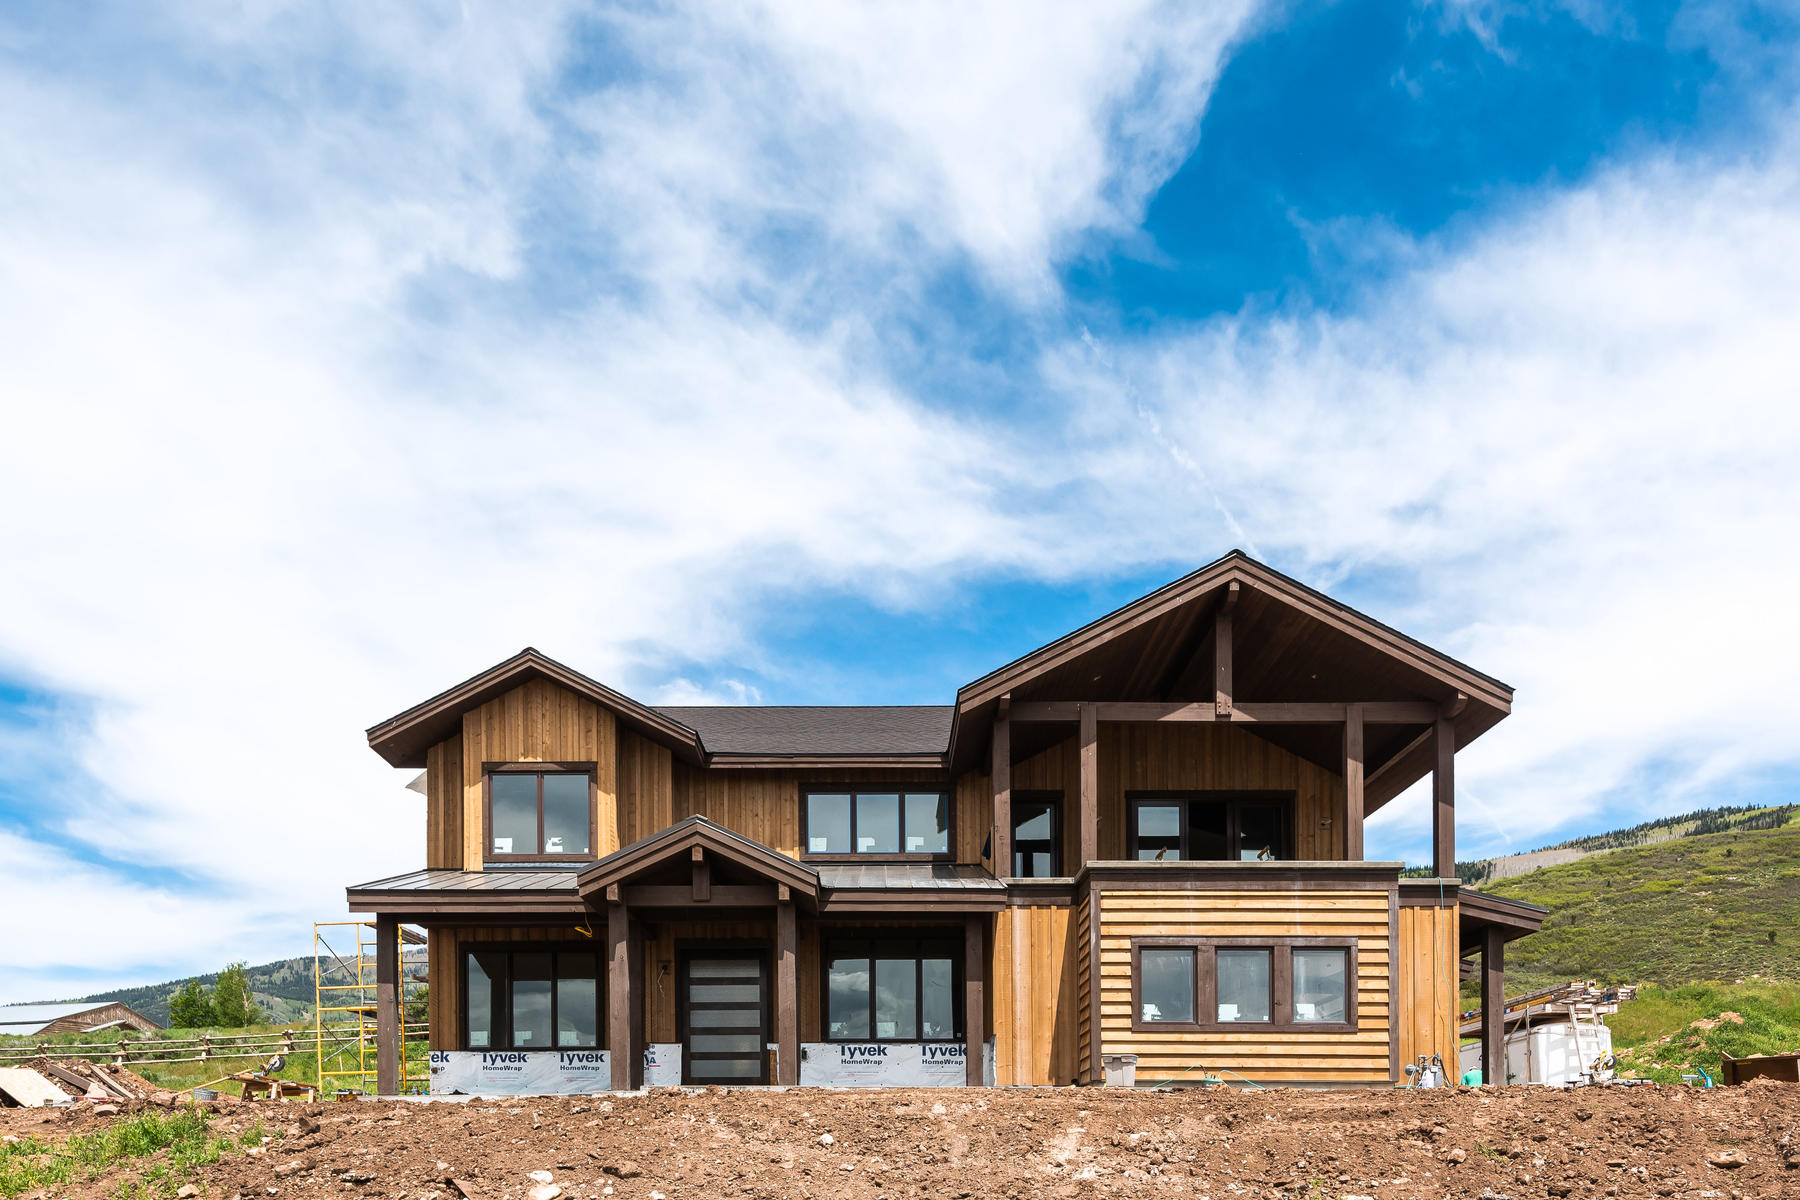 Single Family Homes for Active at New Construction in North Meadows at High Star Ranch 1308 Dovetail Ct Kamas, Utah 84036 United States